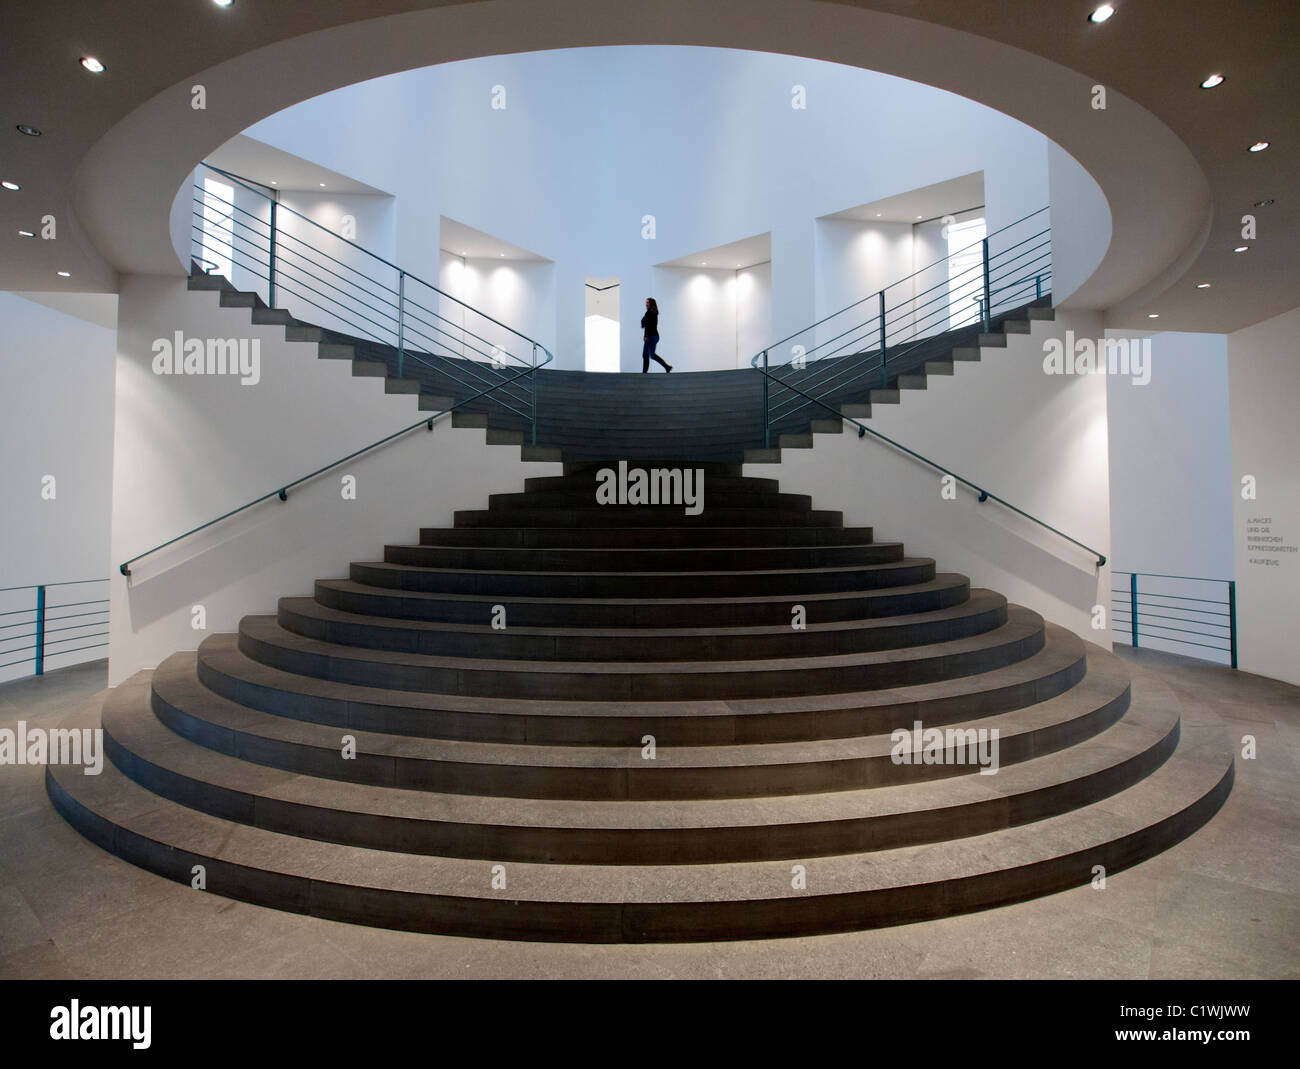 Interior hallway and stairway at  Bonn Kunstmuseum or Art Museum in Germany - Stock Image